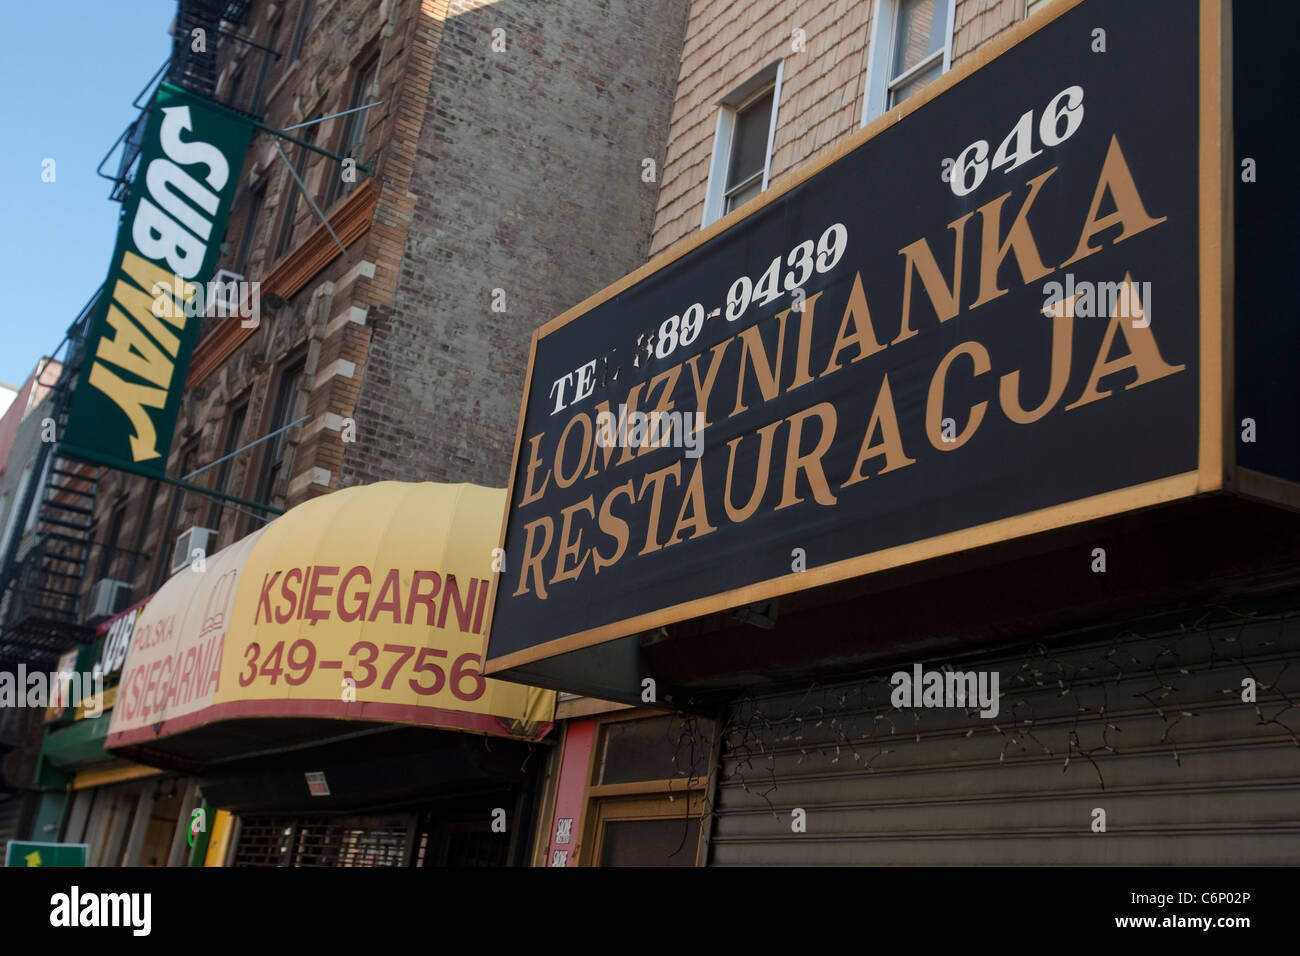 Two Polish stores are pictured by a Subway restaurant in the Greenpoint neighborhood of New York City - Stock Image